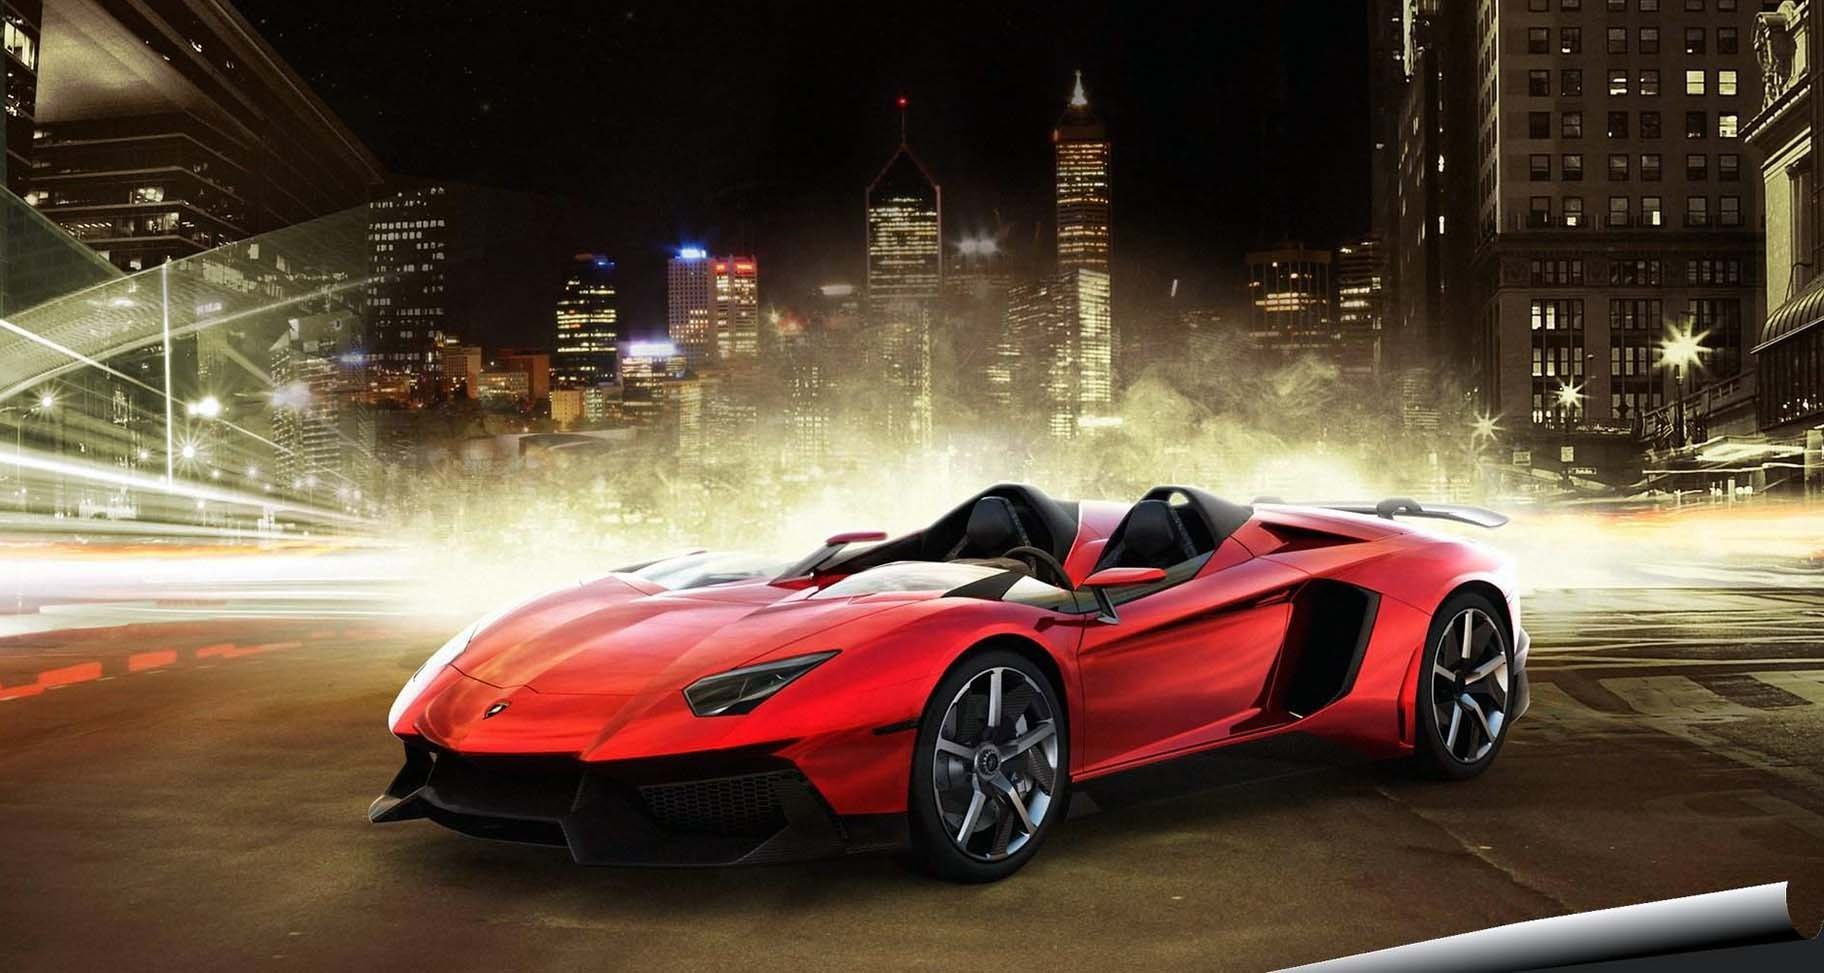 New Lamborghini Aventador Hot Wallpapers Full Hd 1080P On This Month